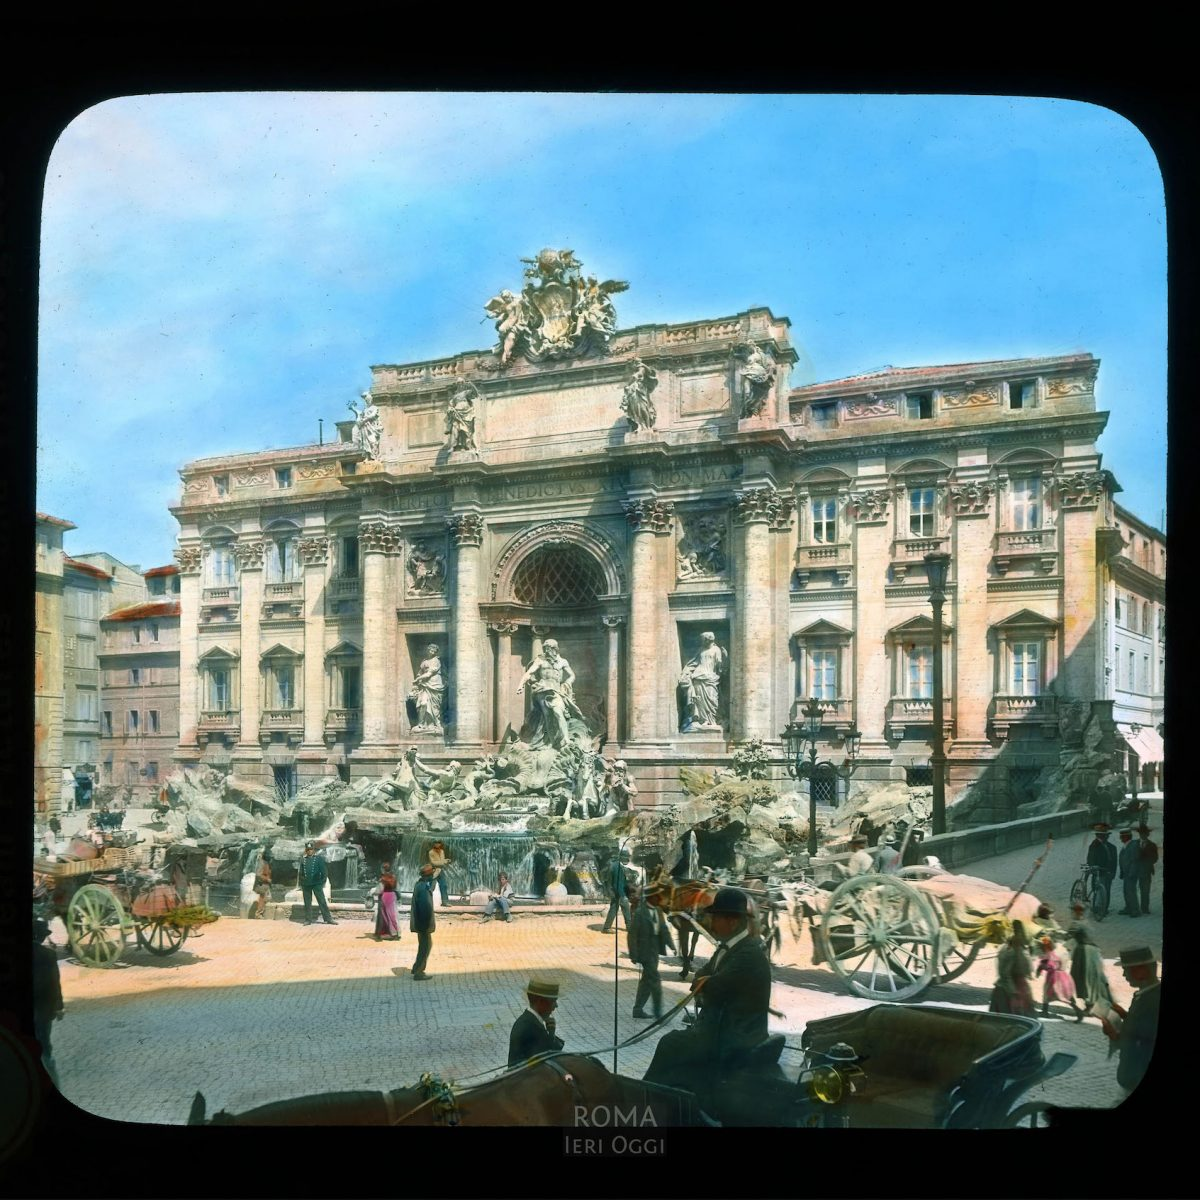 Rome. Trevi Fountain: general view from across the piazza View in tinted lantern slide, ca. 1919-1938. The fountain dates from 1732-1762.